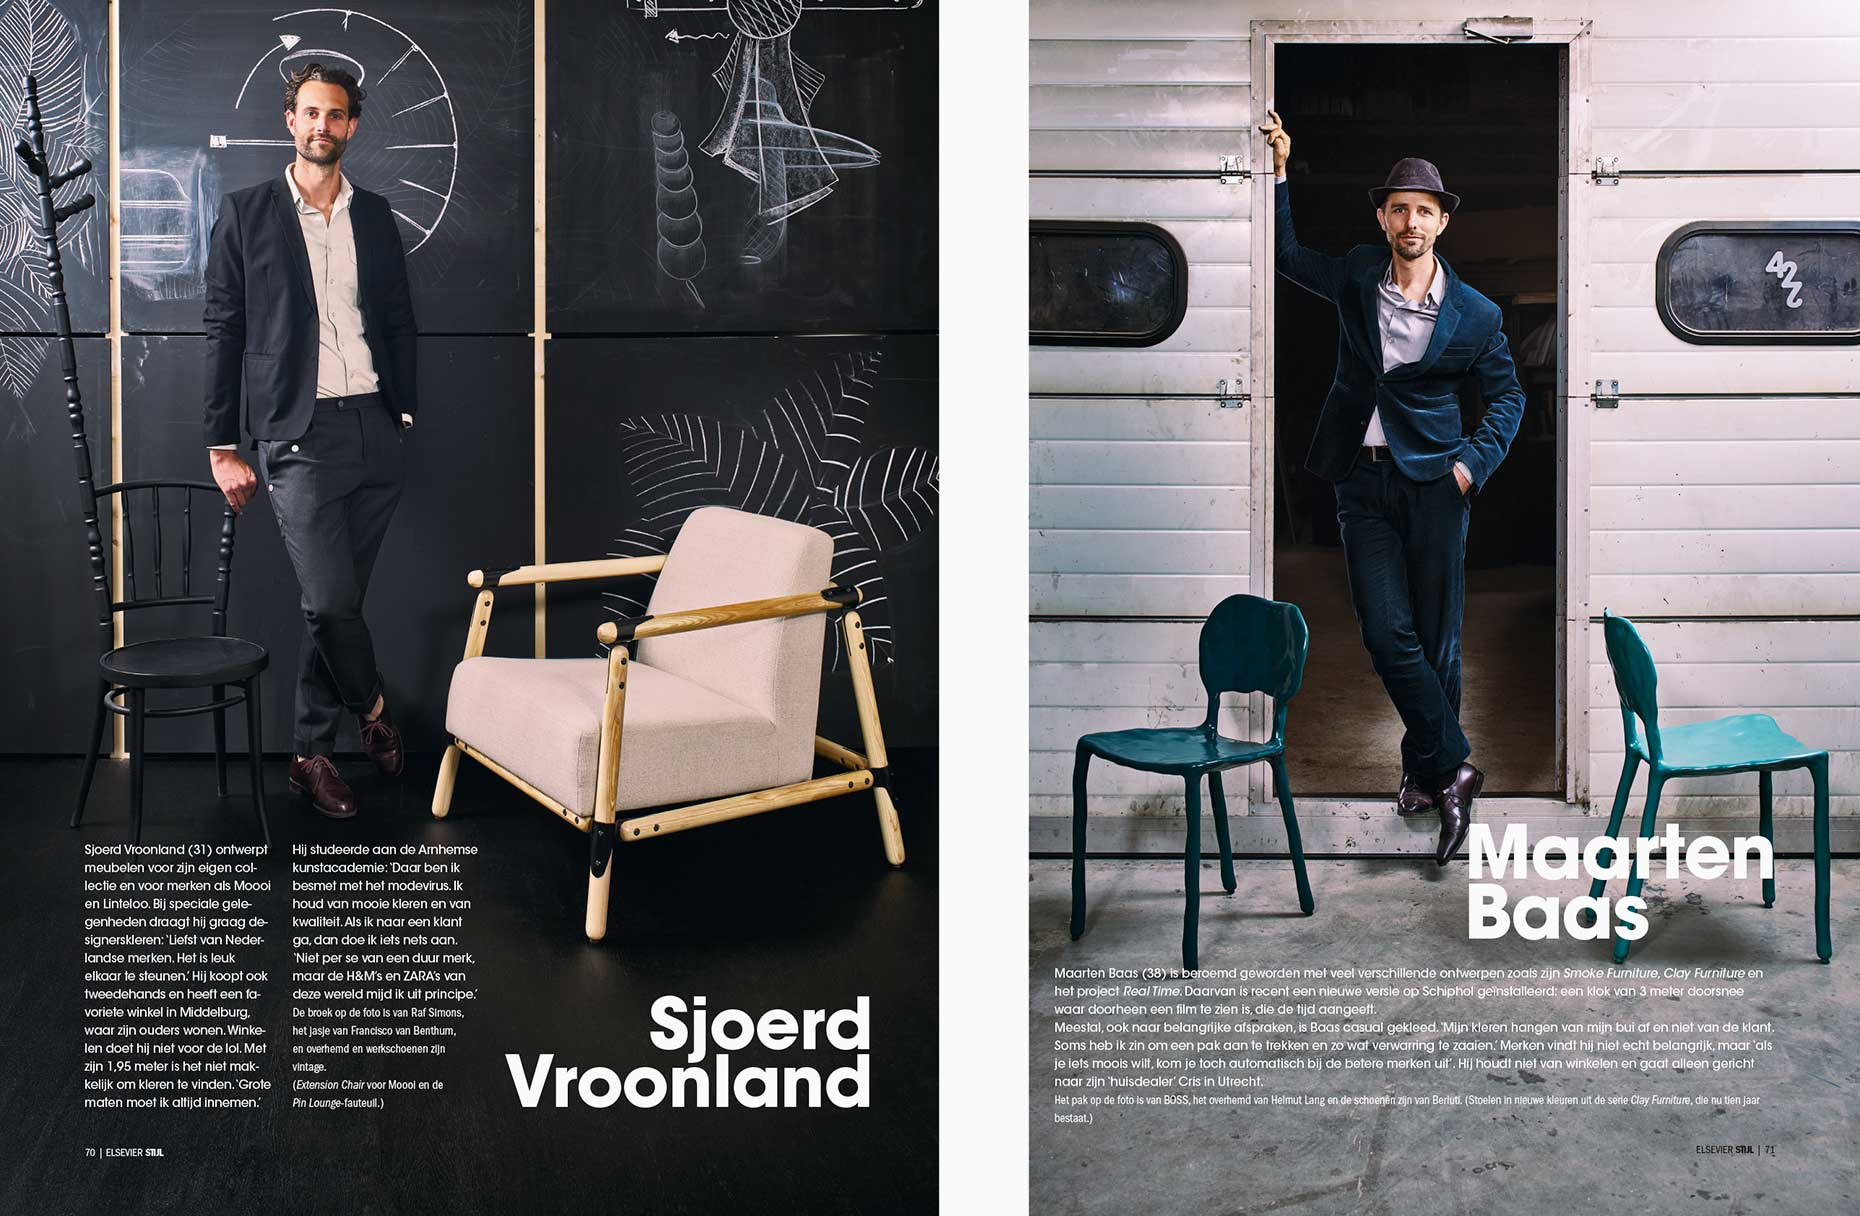 Dressed Dutch Designers Sjoerd Vroonland and Maarten Baas